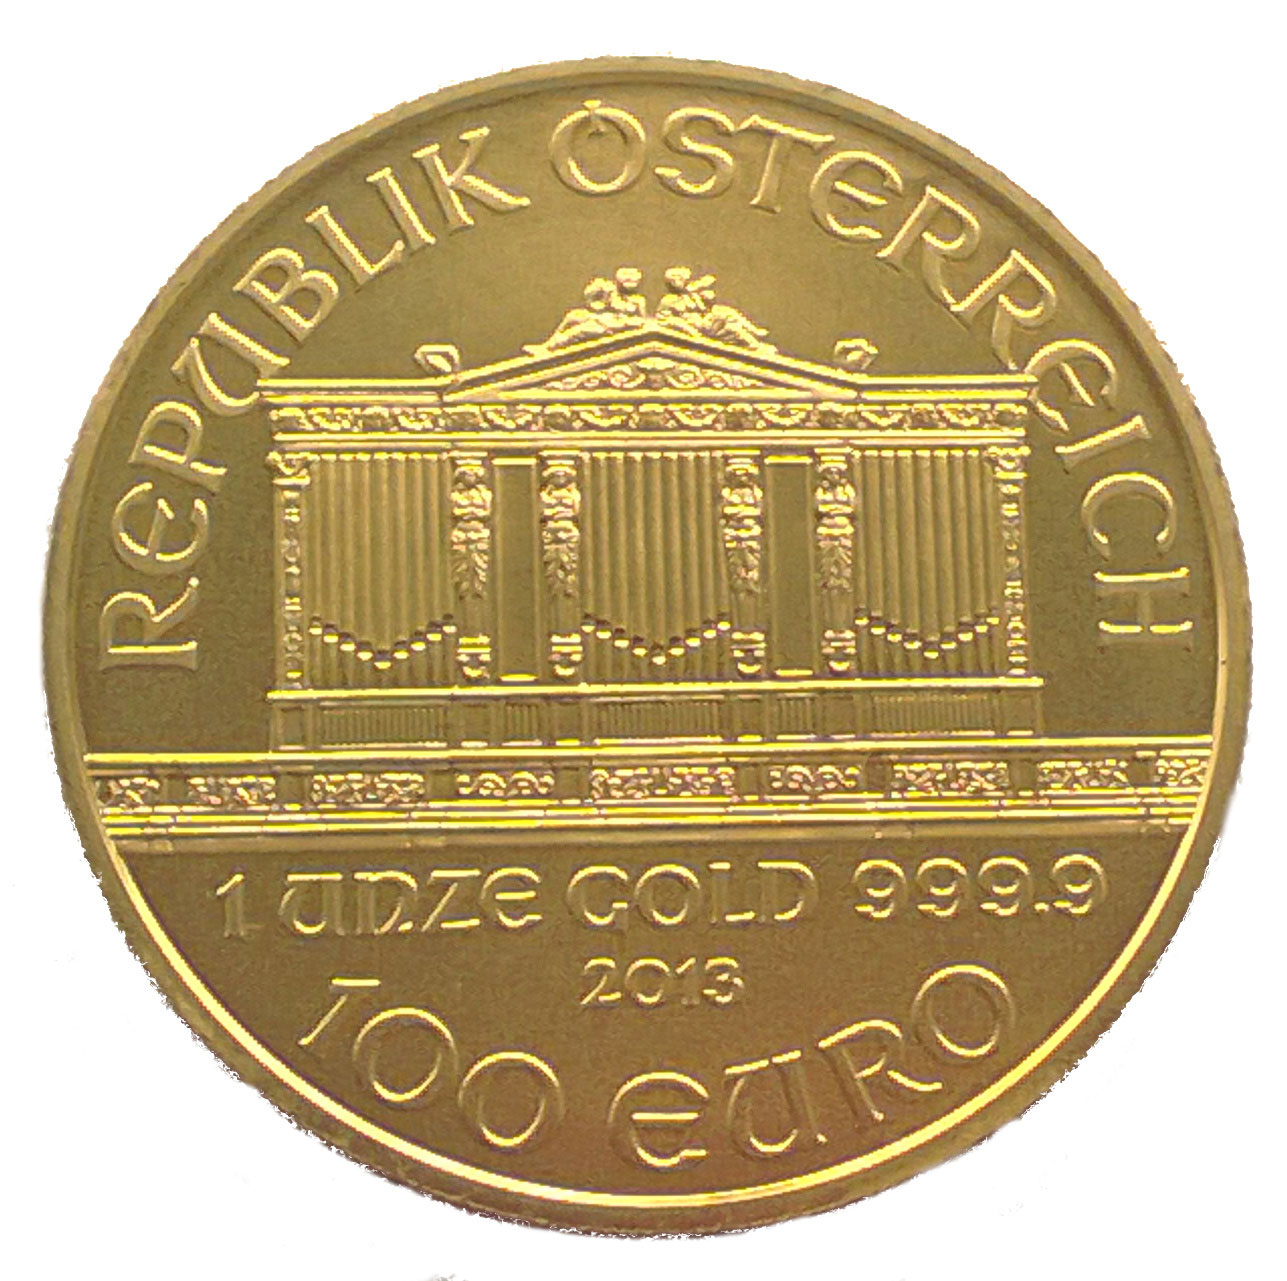 Buy 1oz Philharmonic Gold Coins Bullionbypost 174 From 163 848